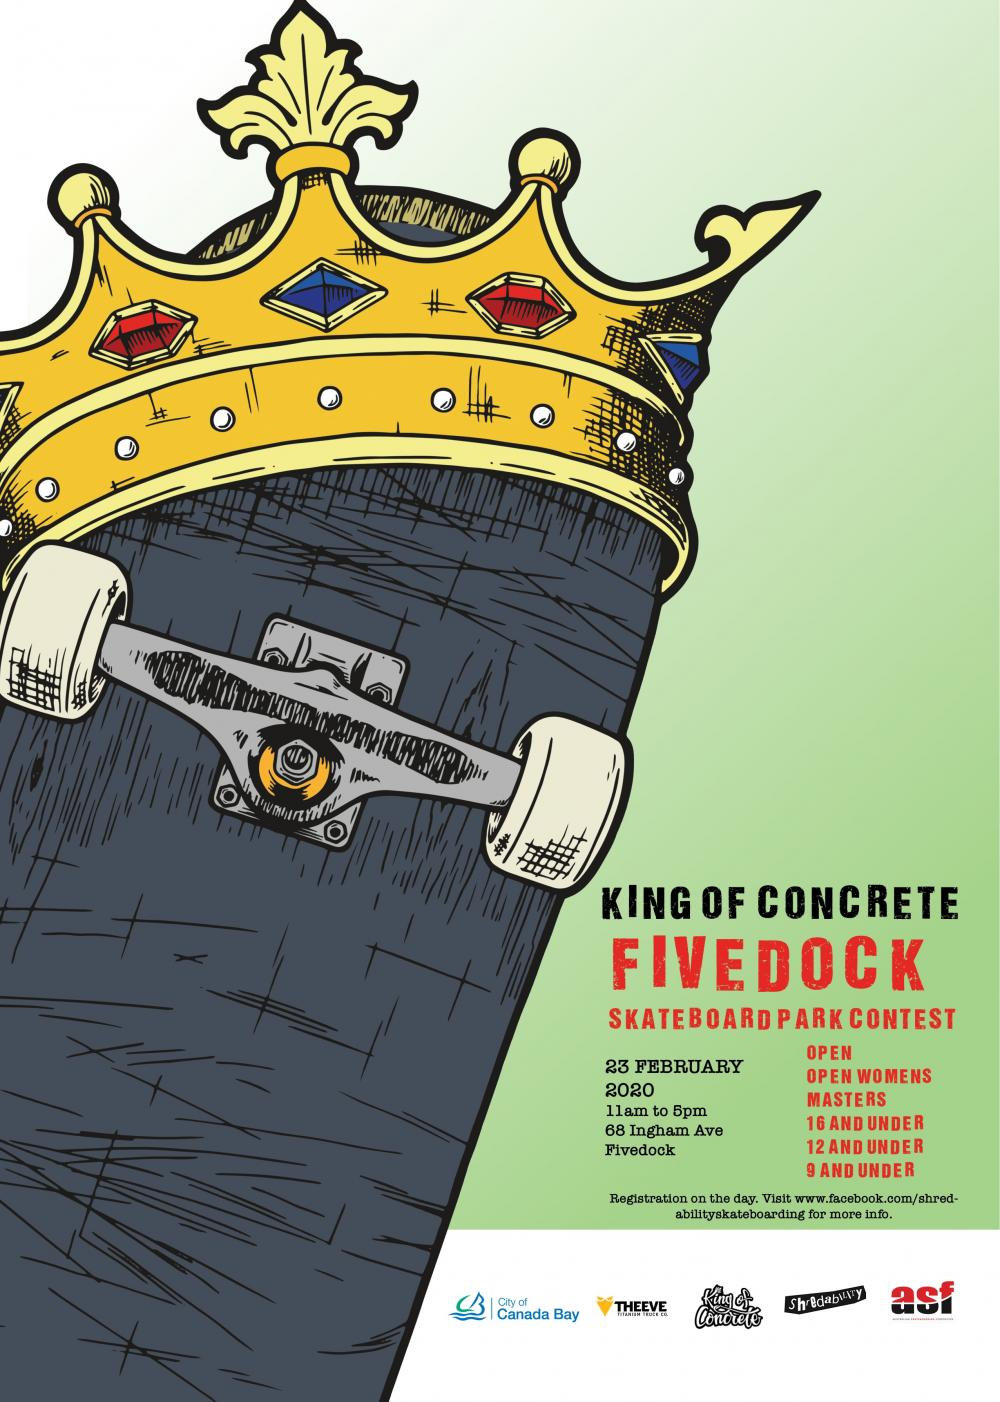 King of Concrete Skateboard Contest